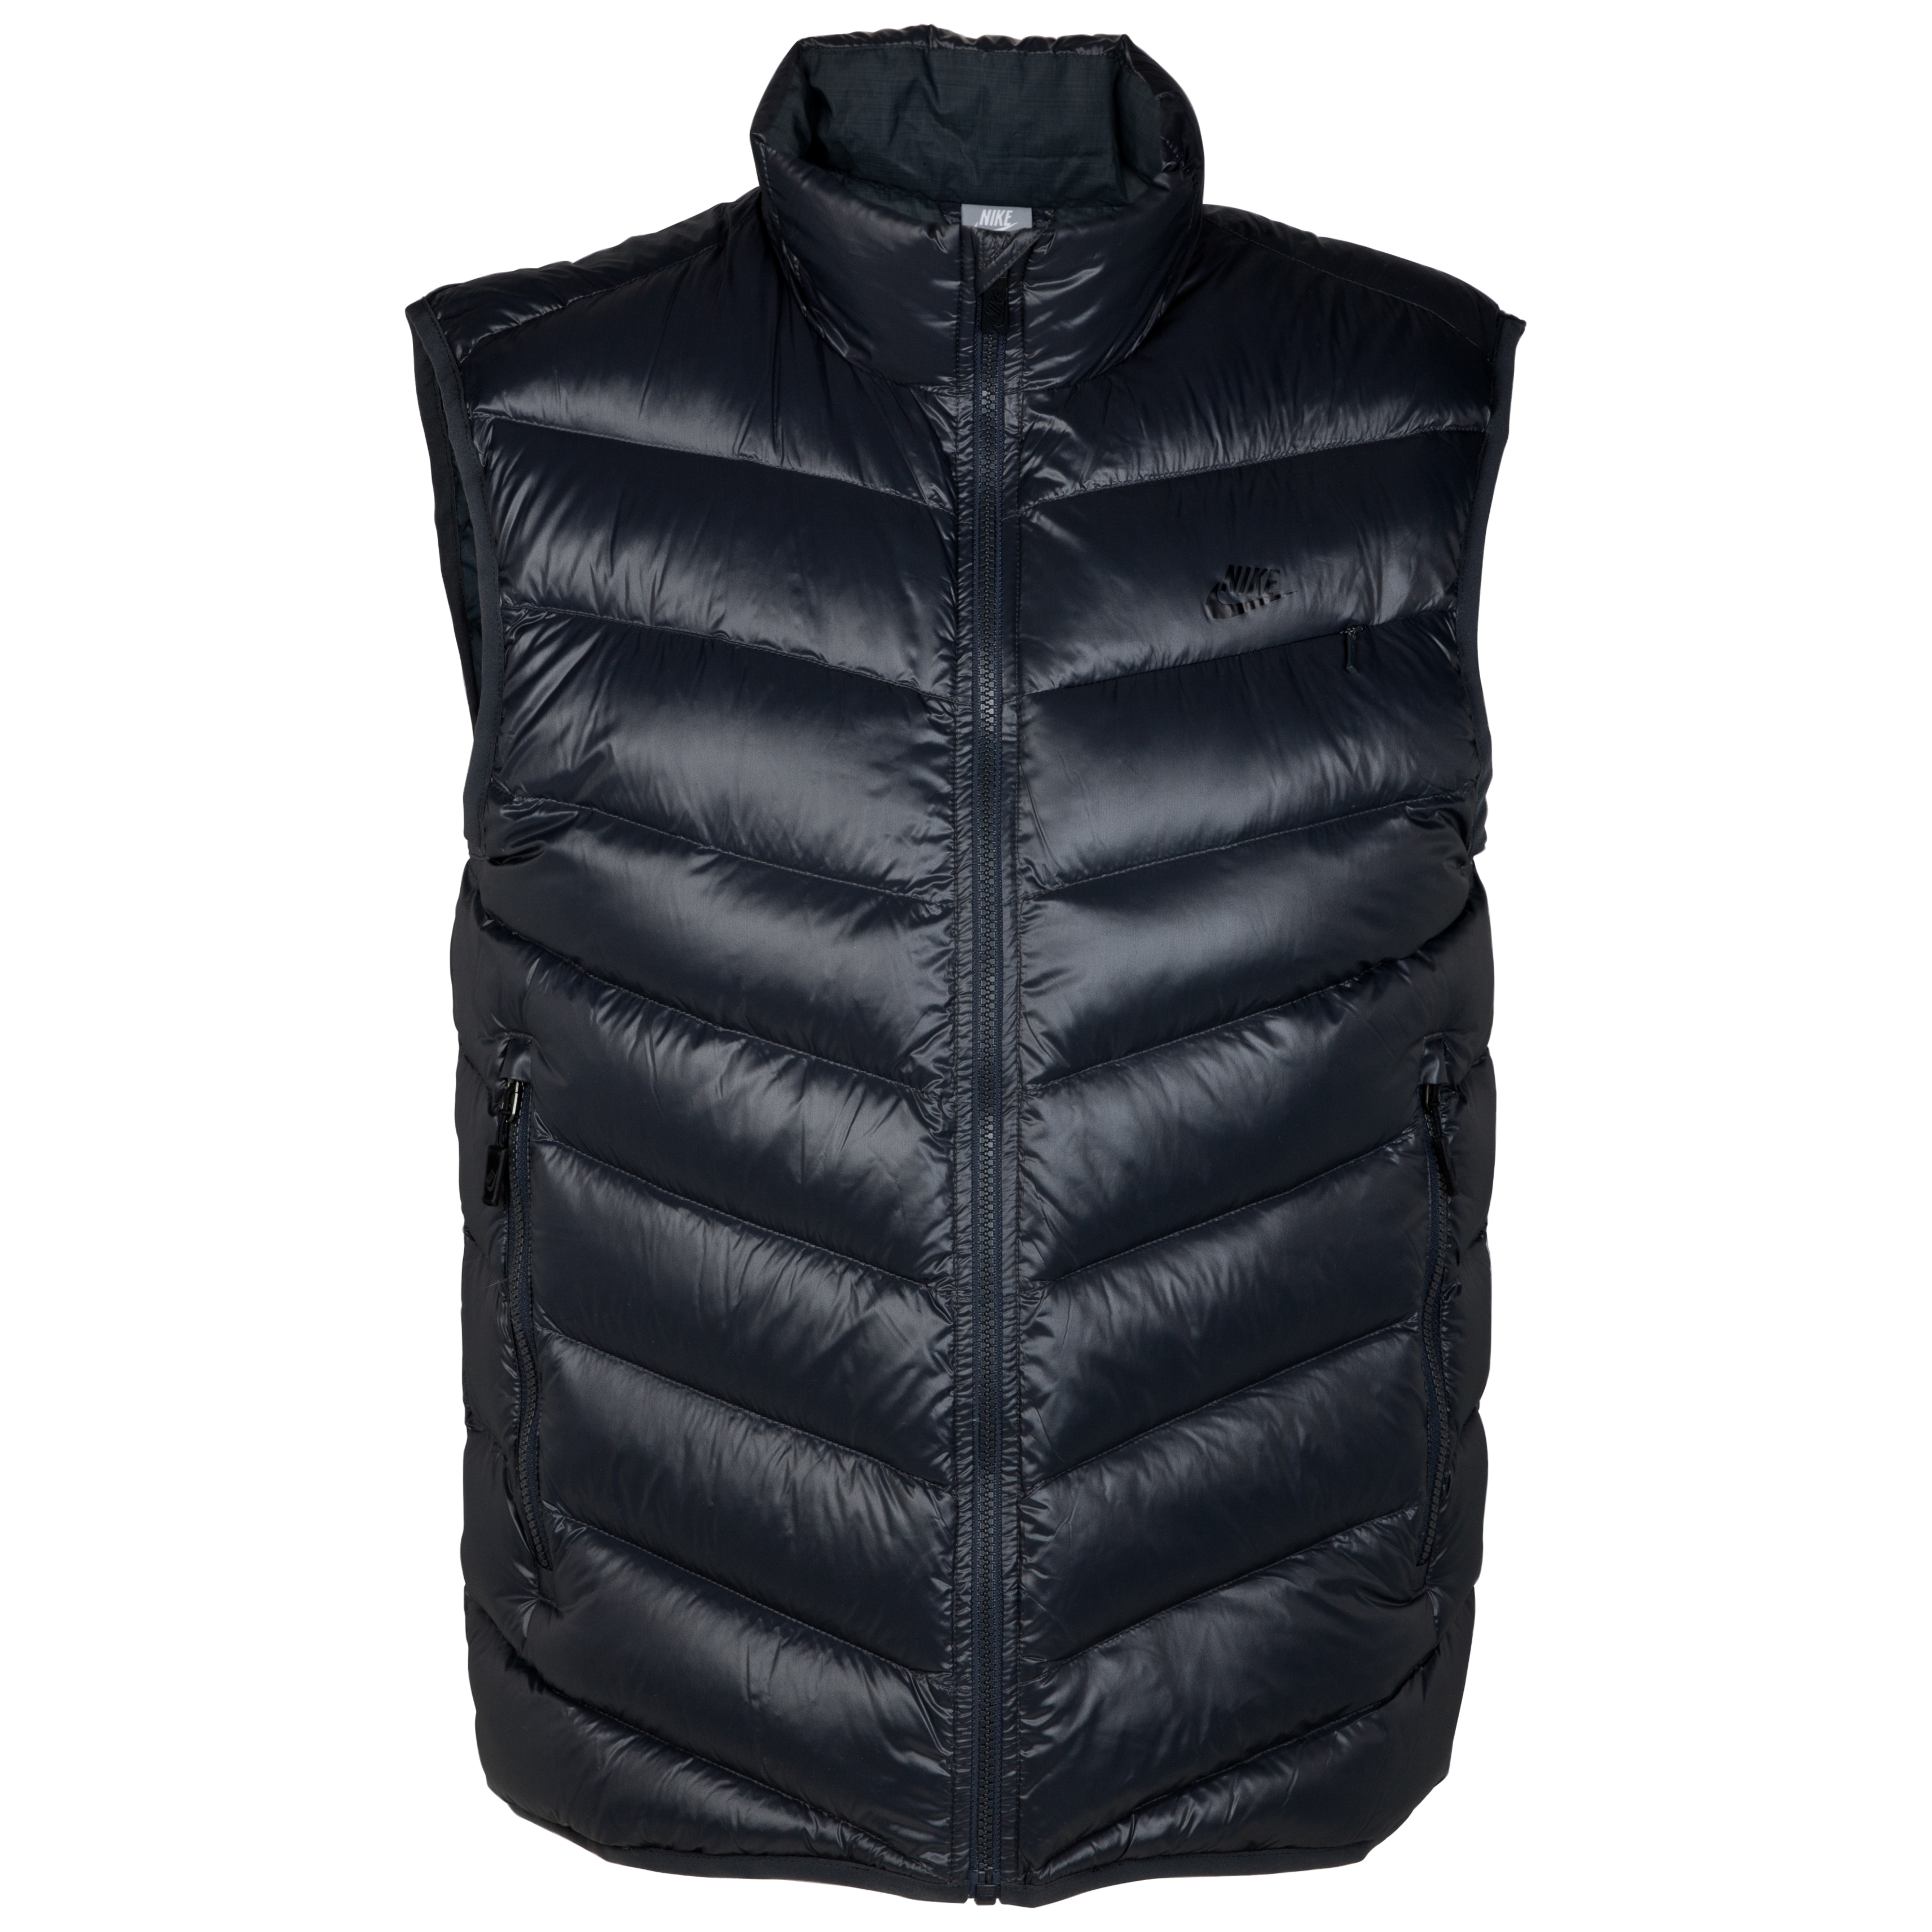 Nike Cascade 700 Down Vest - Anthracite/Black